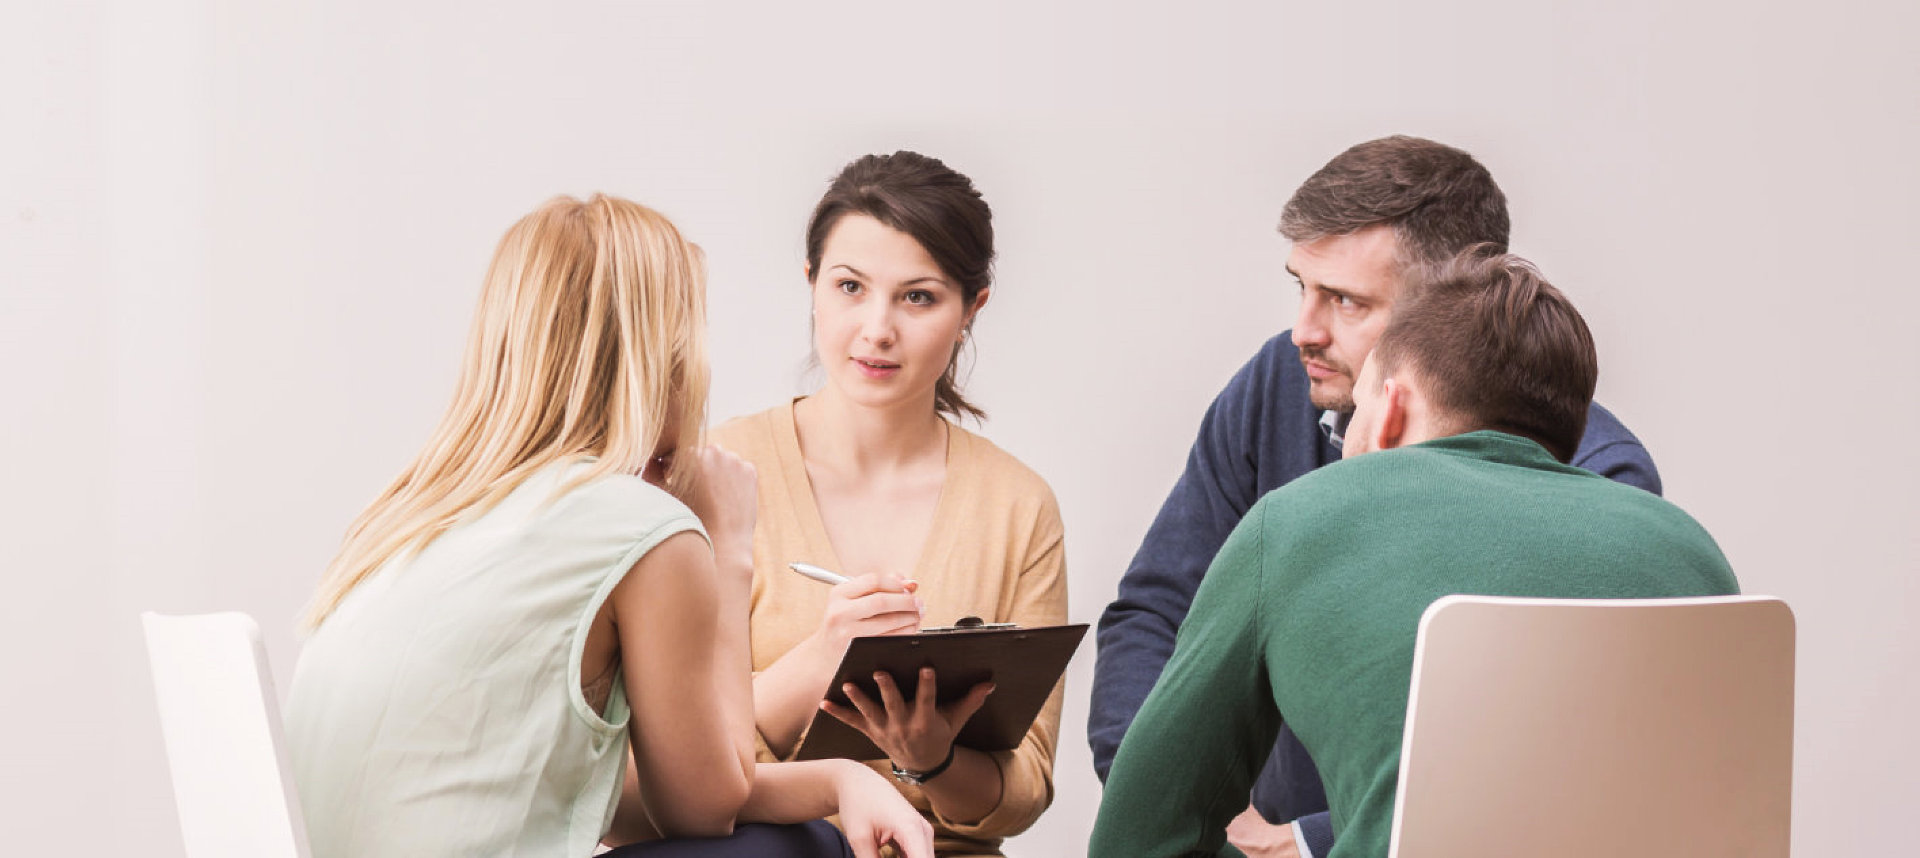 people having a group counselling